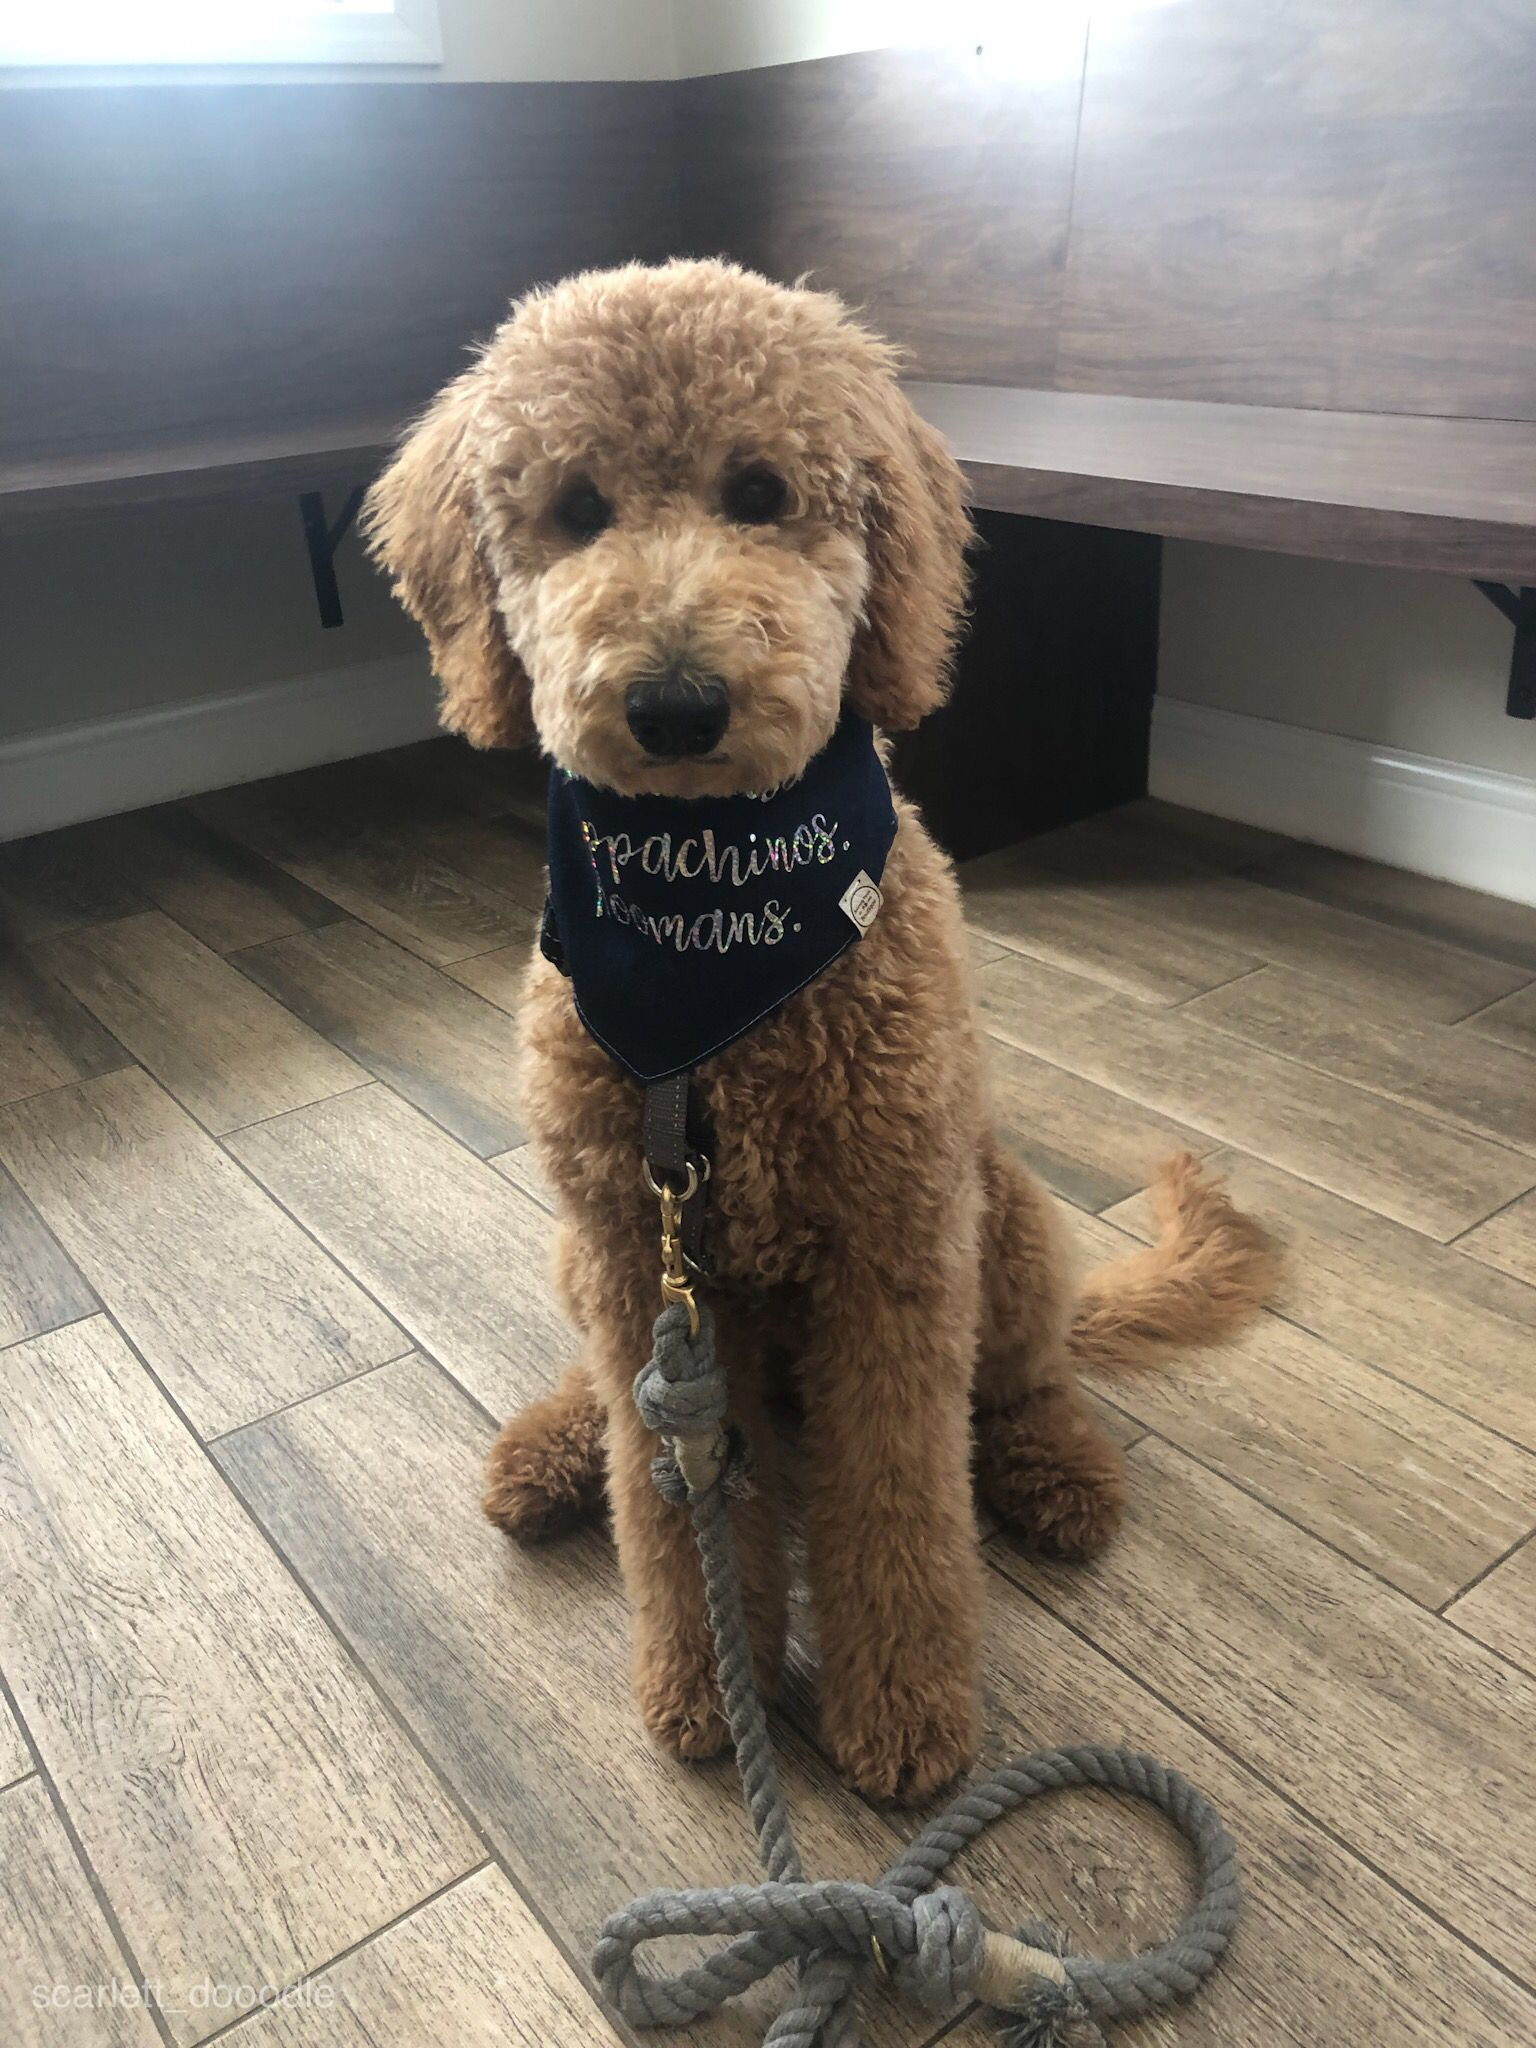 Doodle Goldendoodle Cuteanimals Cutepuppies Puppachino